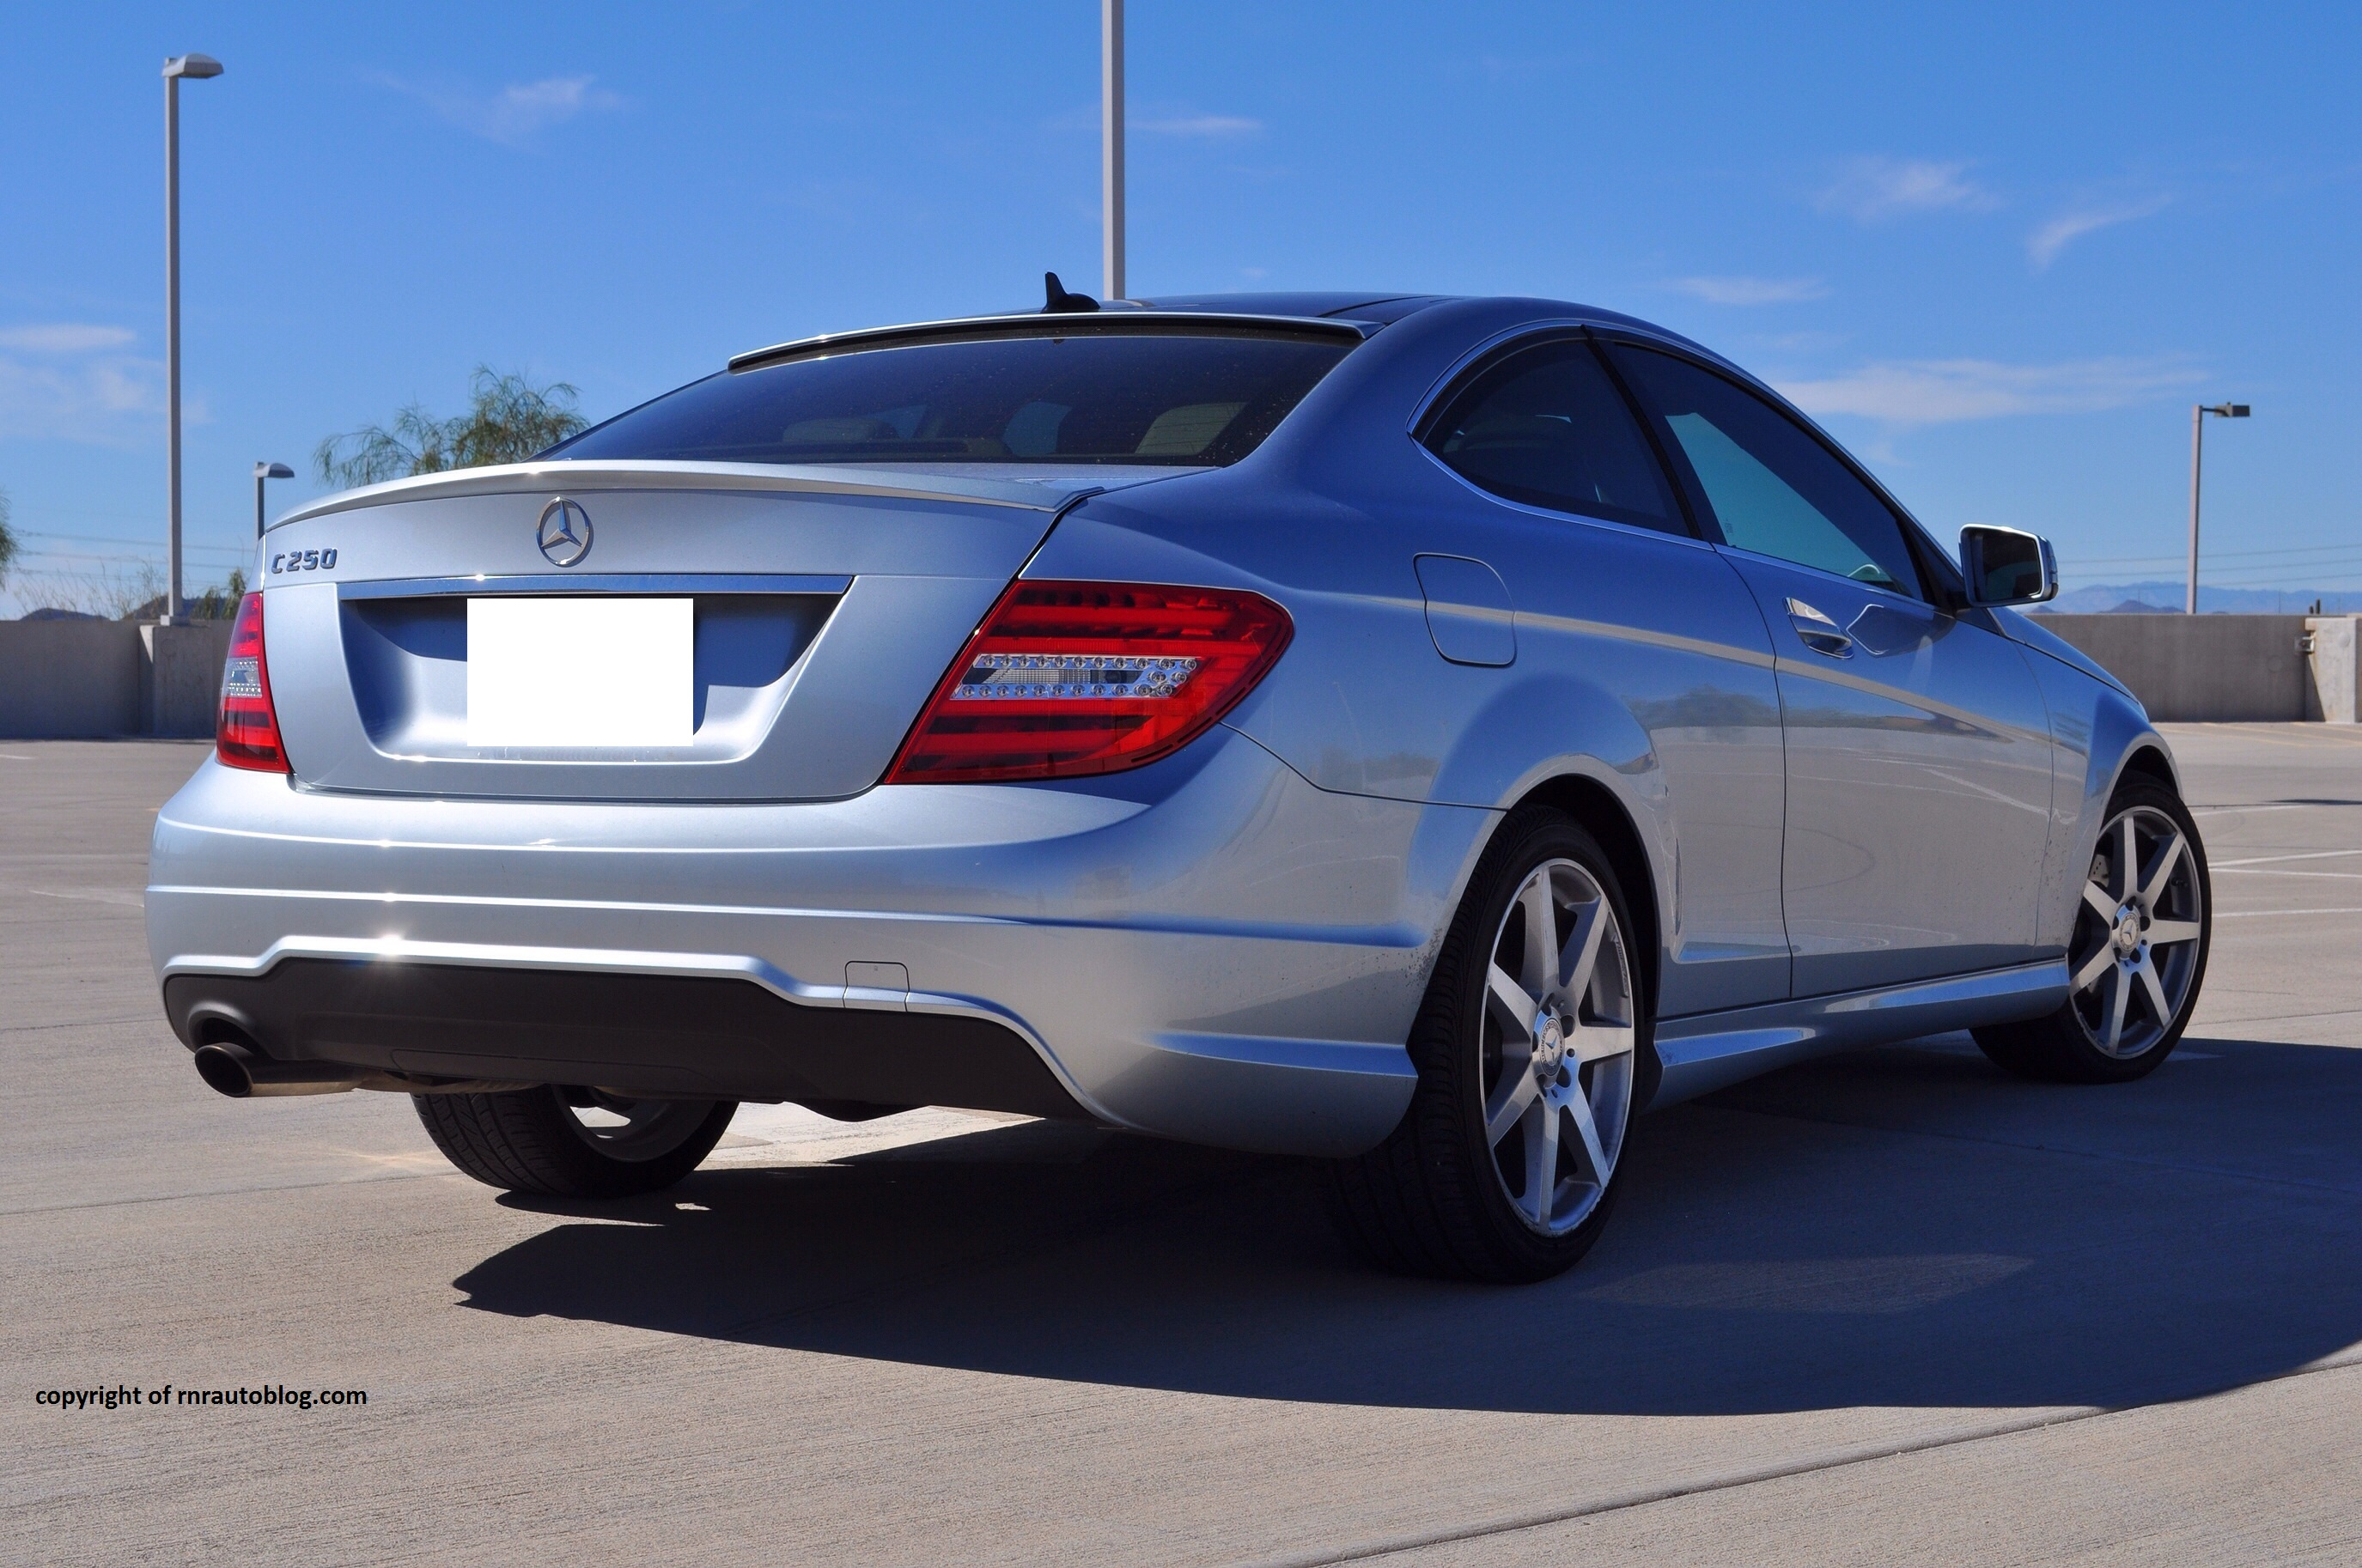 2012 Mercedes Benz C250 Coupe Review Rnr Automotive Blog